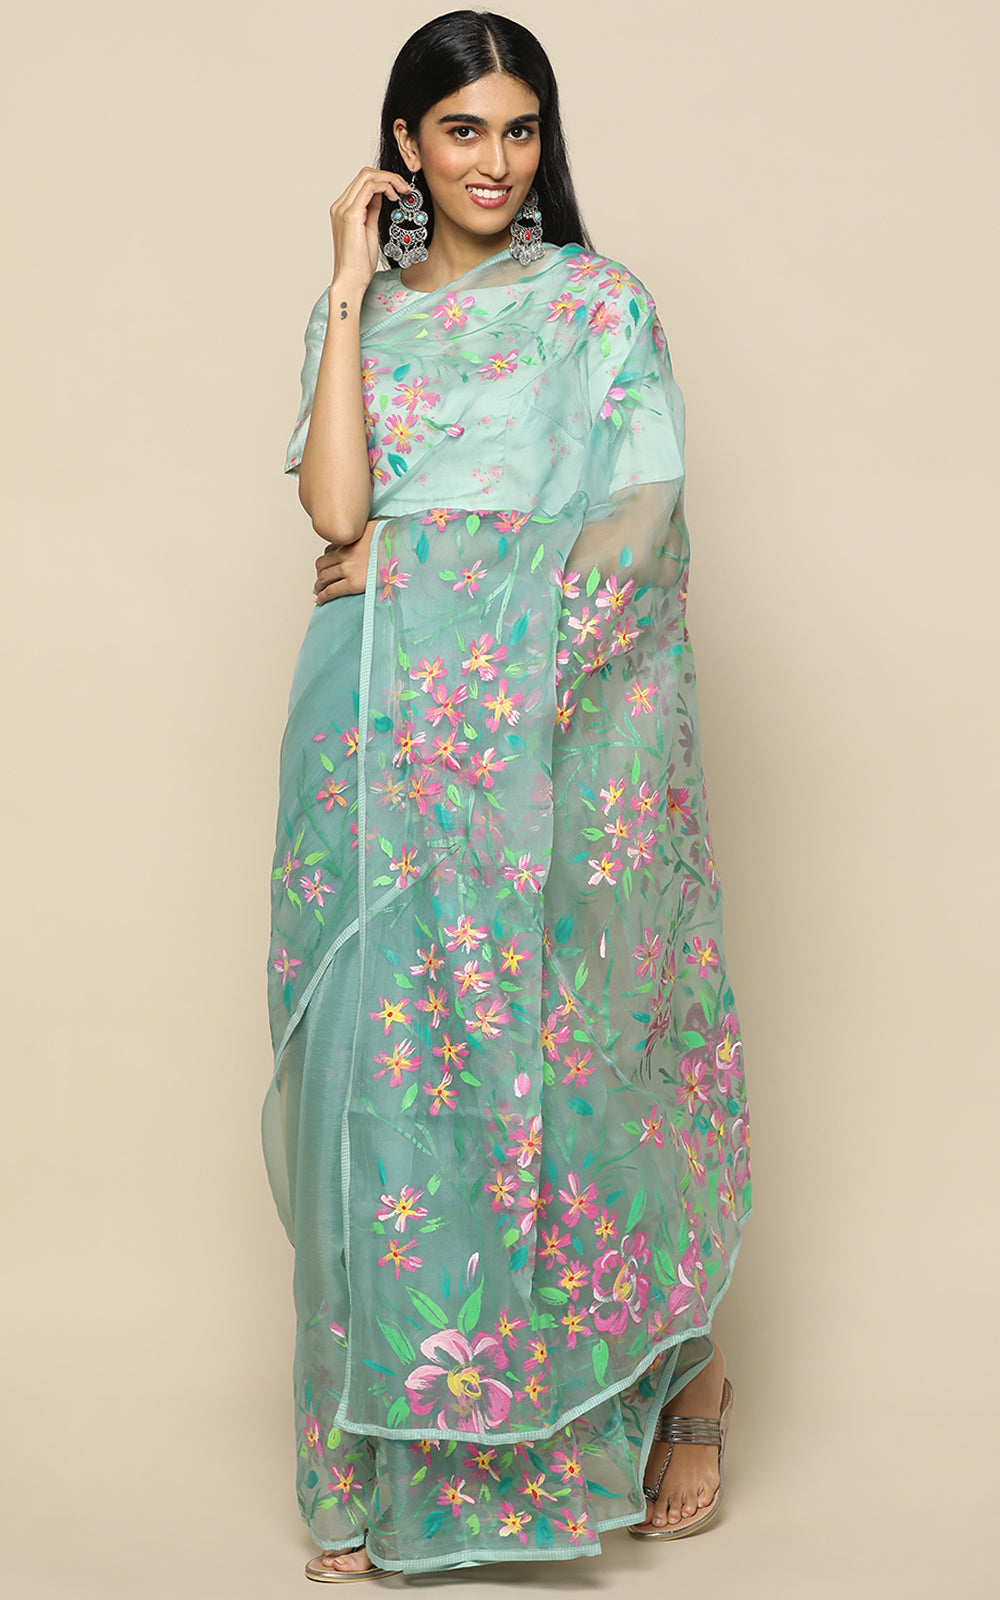 TEAL ORGANZA SILK SAREE WITH HANDPAINTED PASTEL FLOWERS